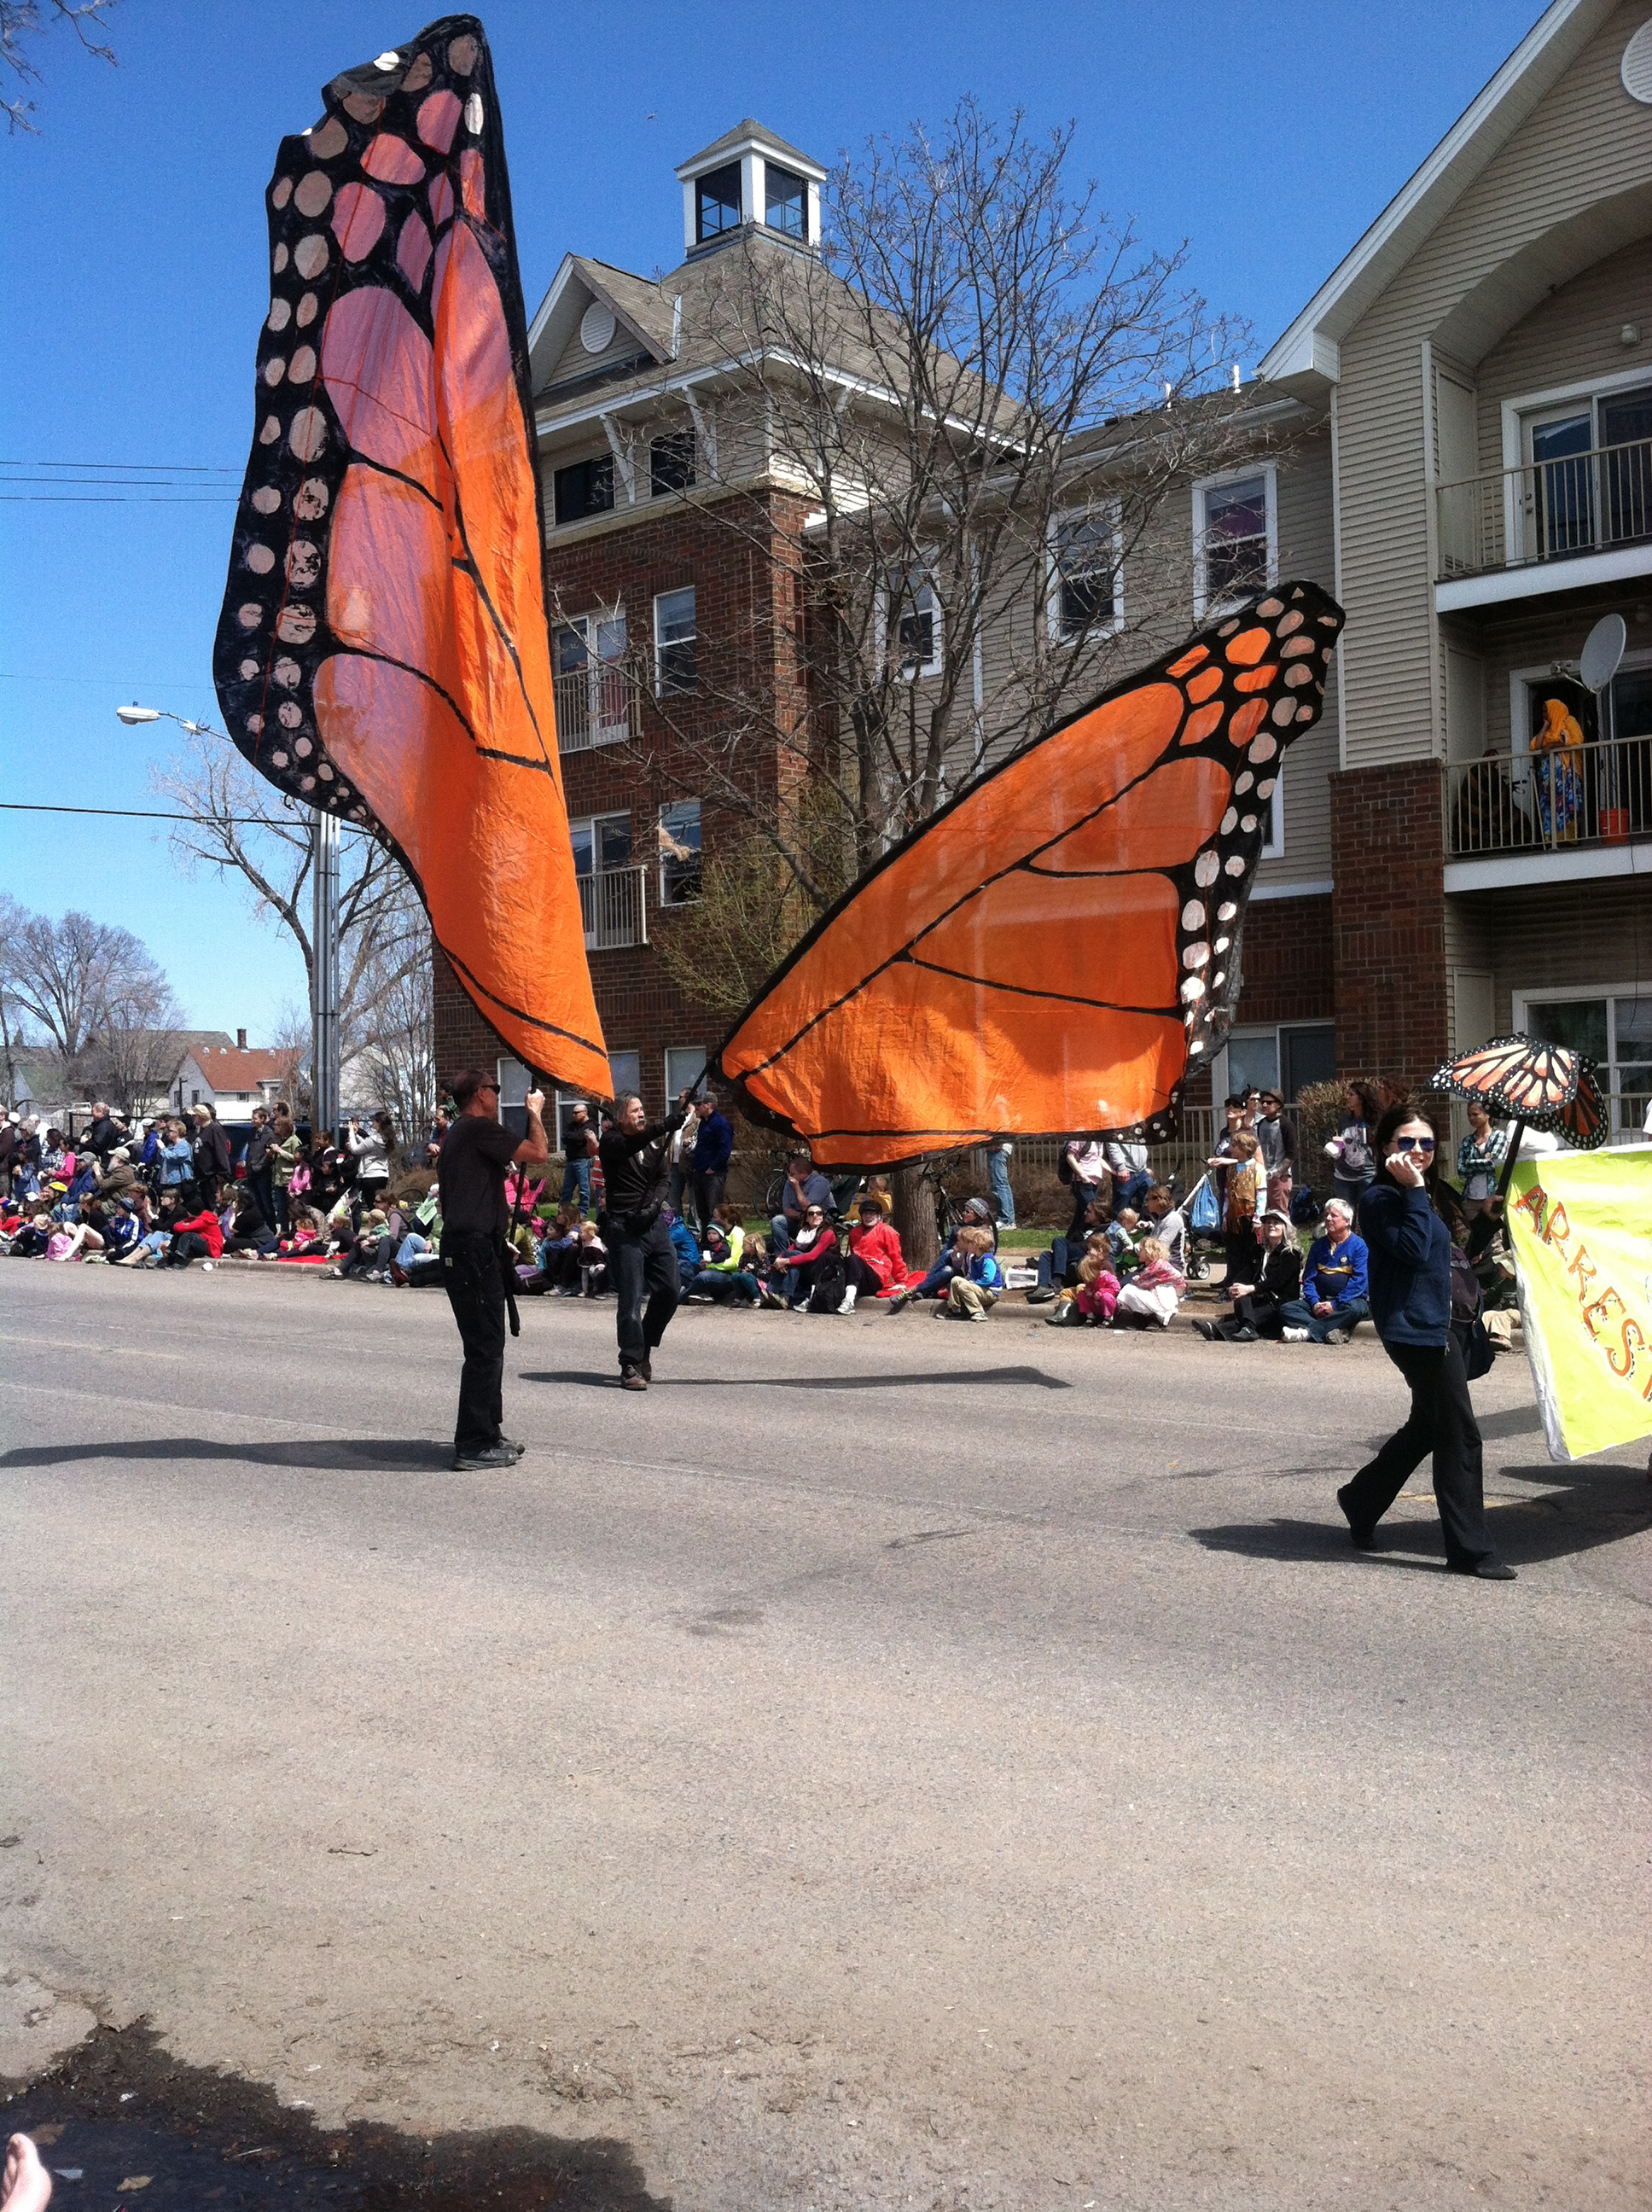 and we made it to the May Day Parade